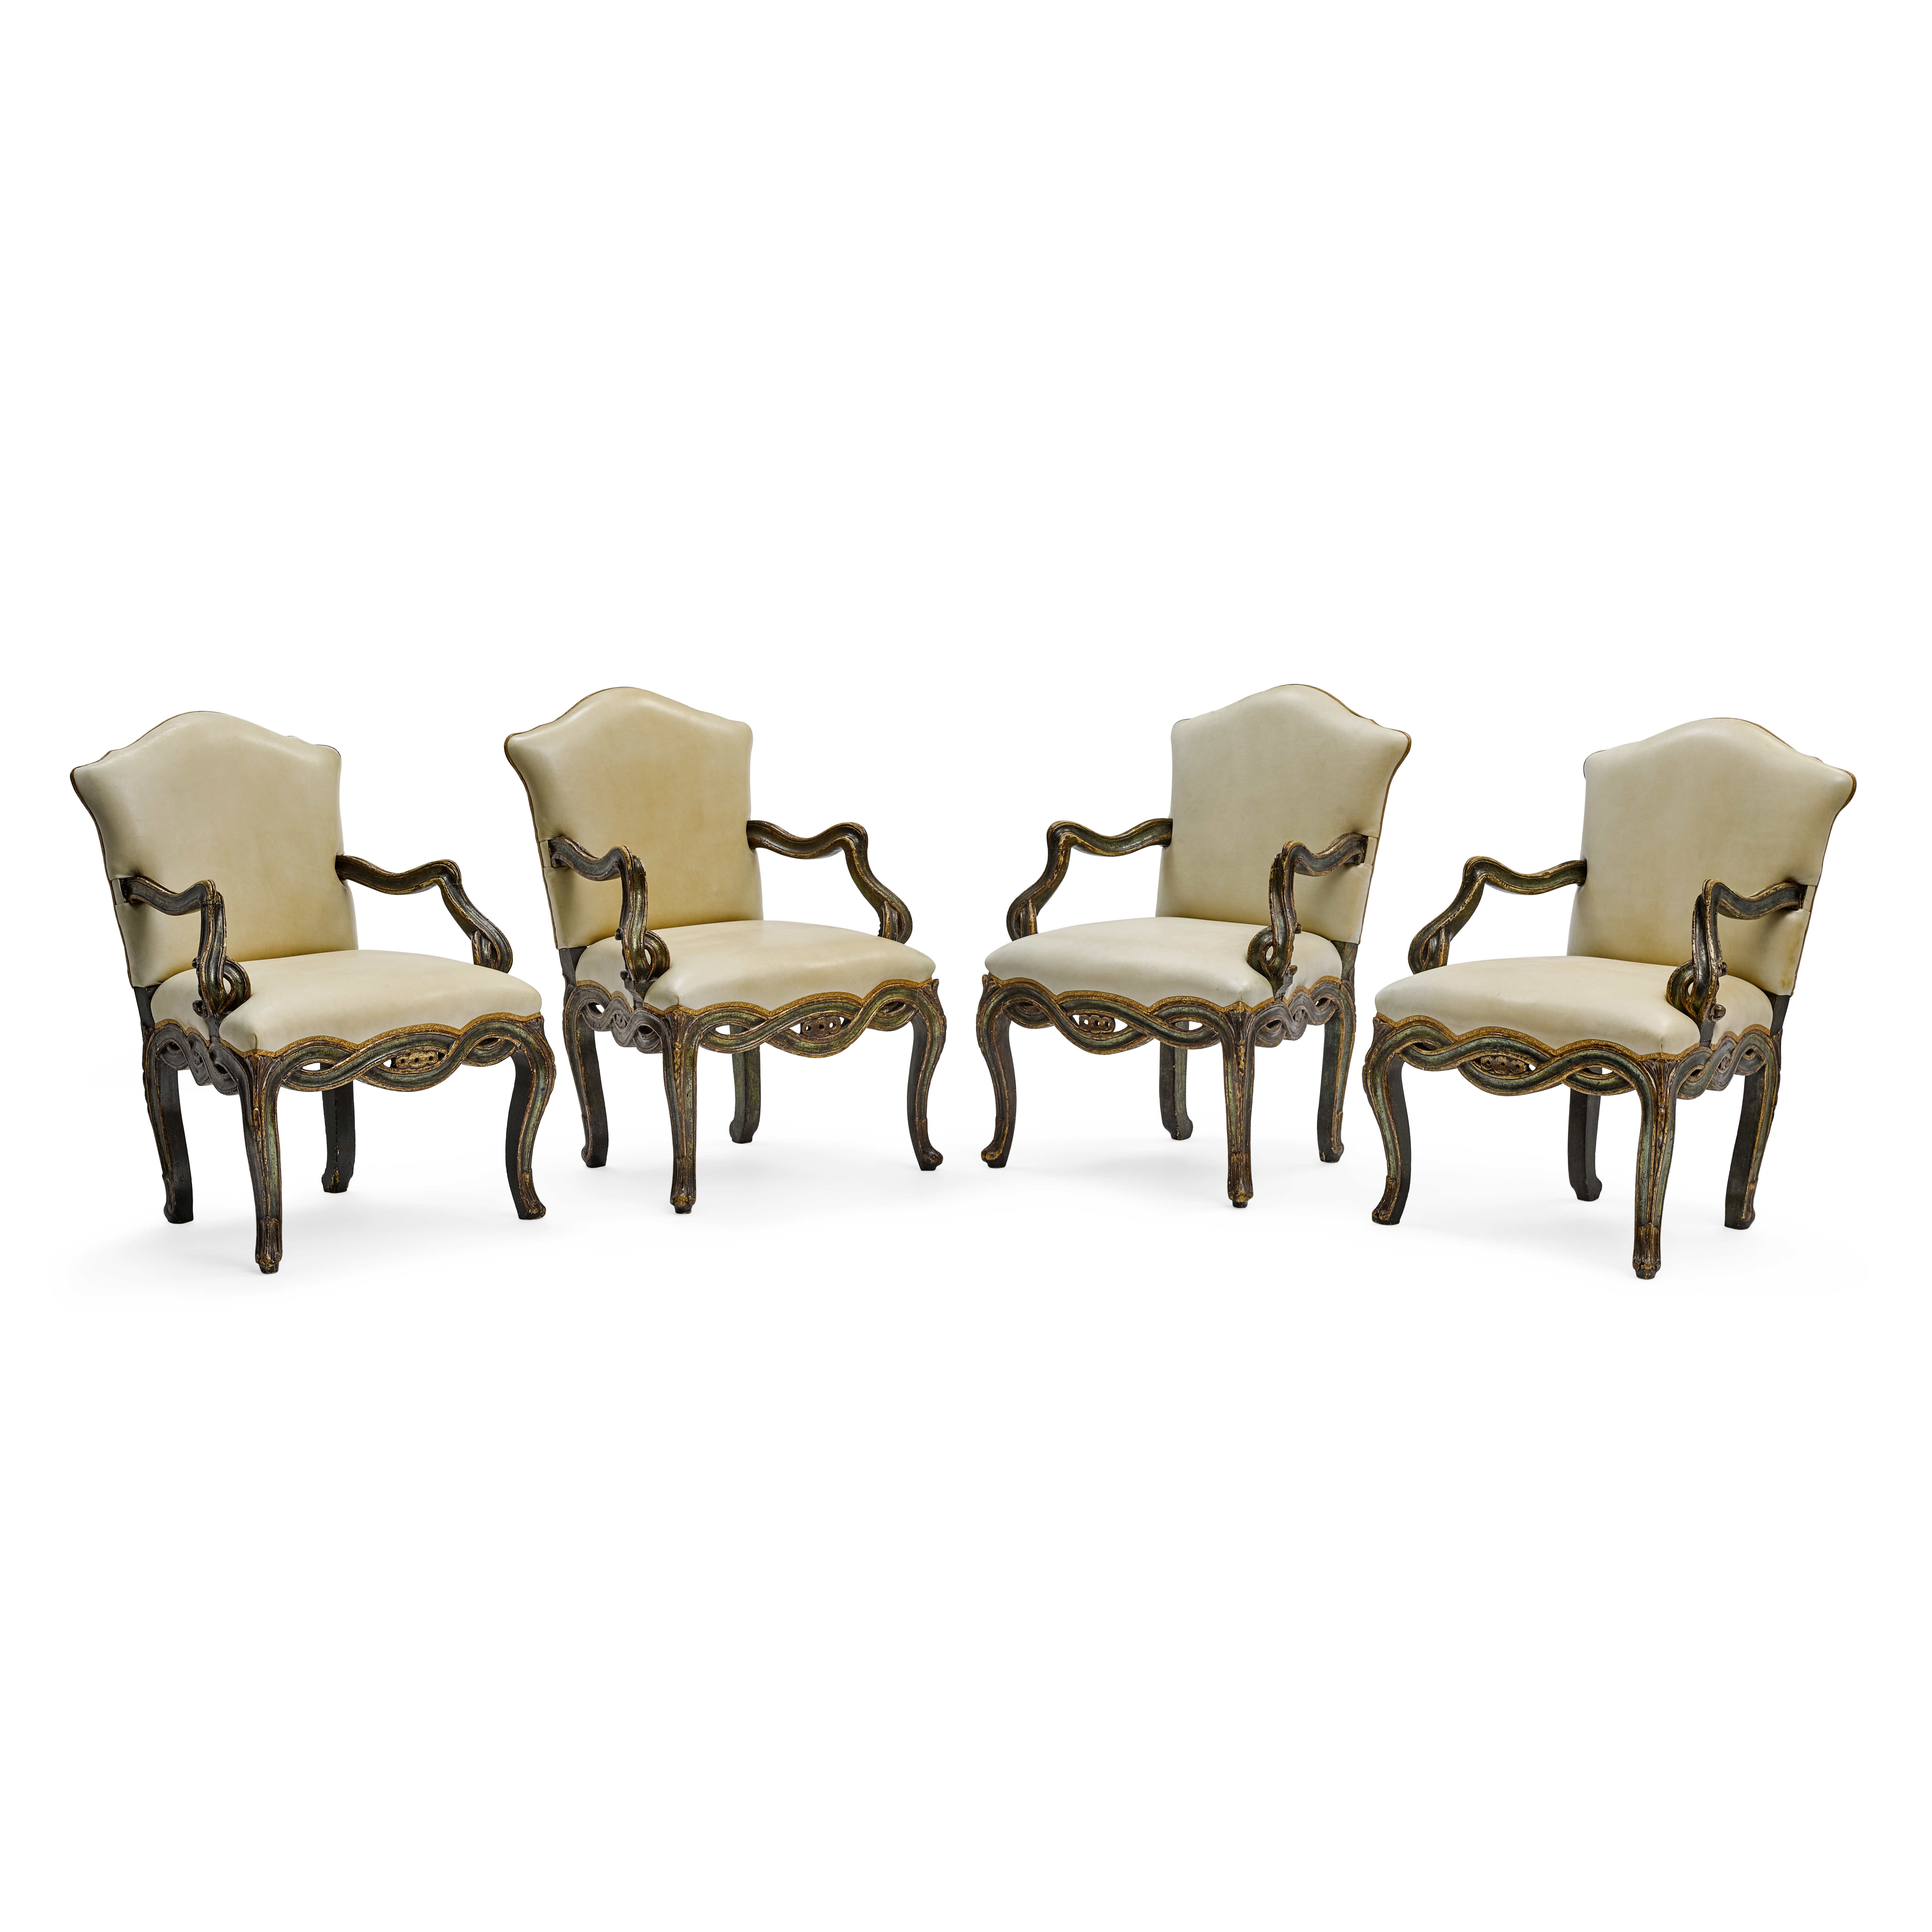 Lot 157 - An Assembled Set of Four Venetian Rococo Style Painted Wood Armchairs 19th century and later